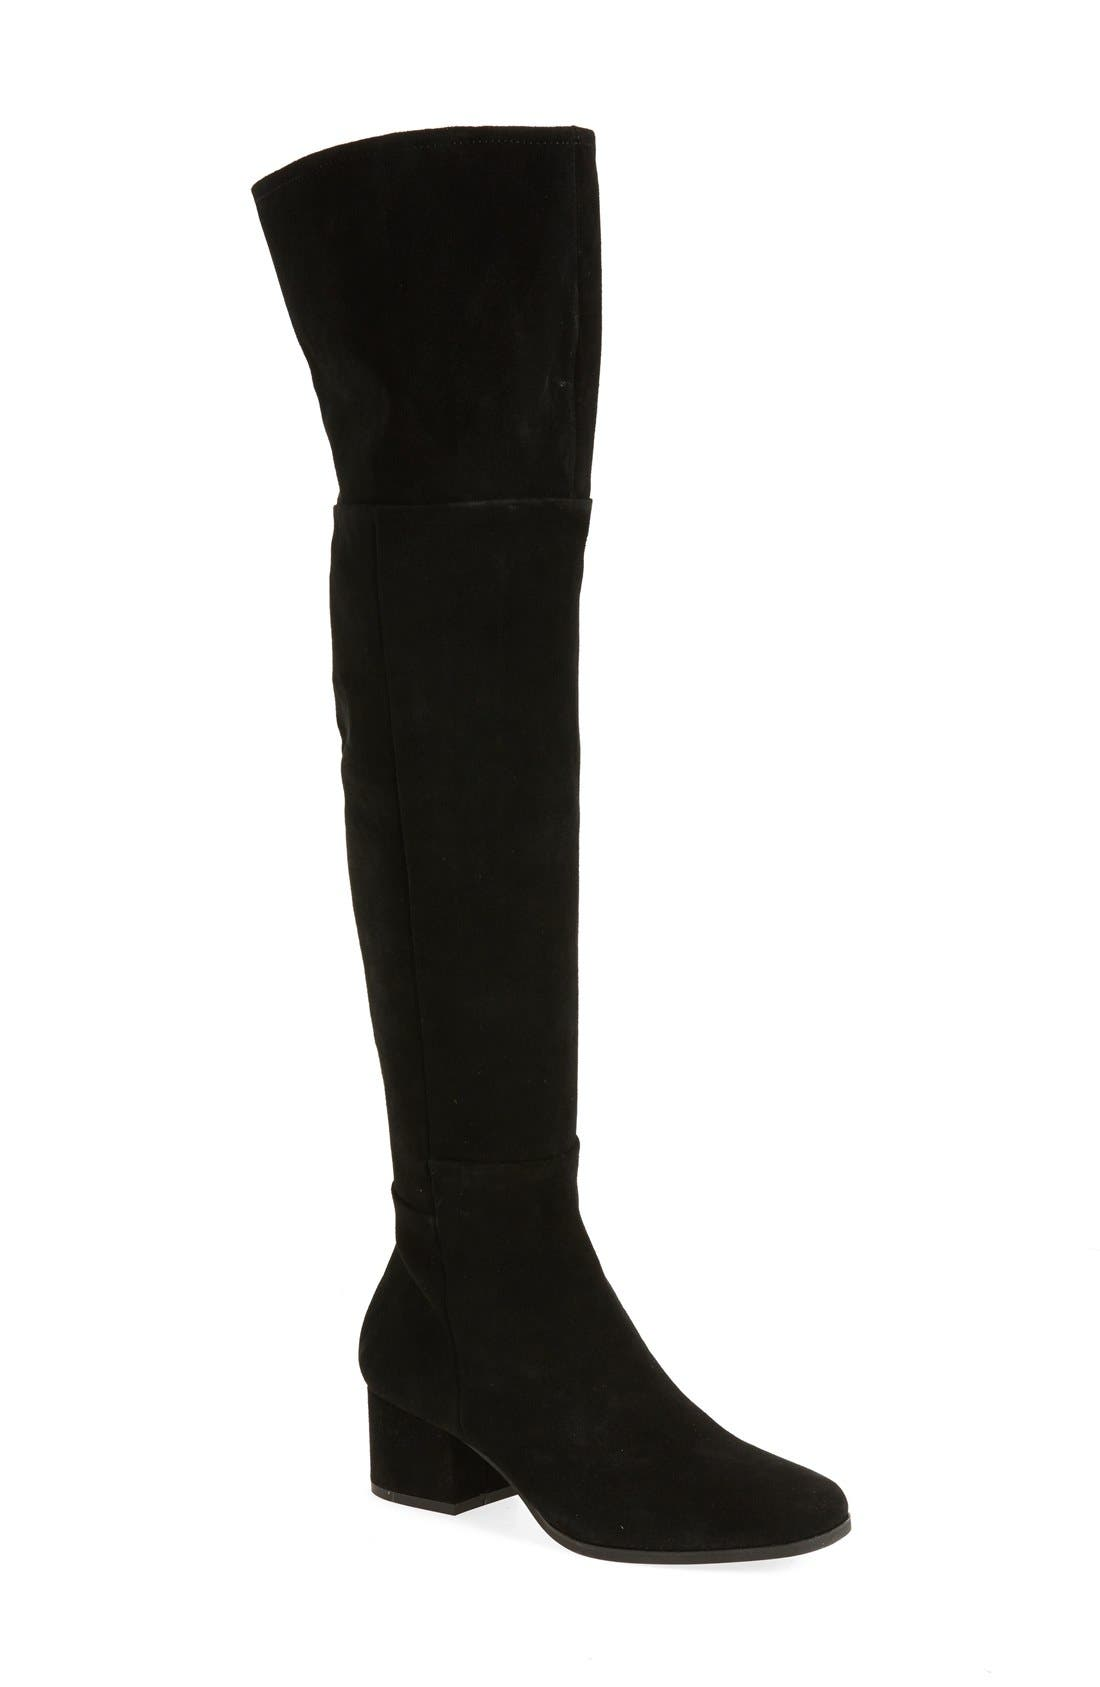 Alternate Image 1 Selected - Steven by Steve Madden Phaser Over the Knee Boot (Women)